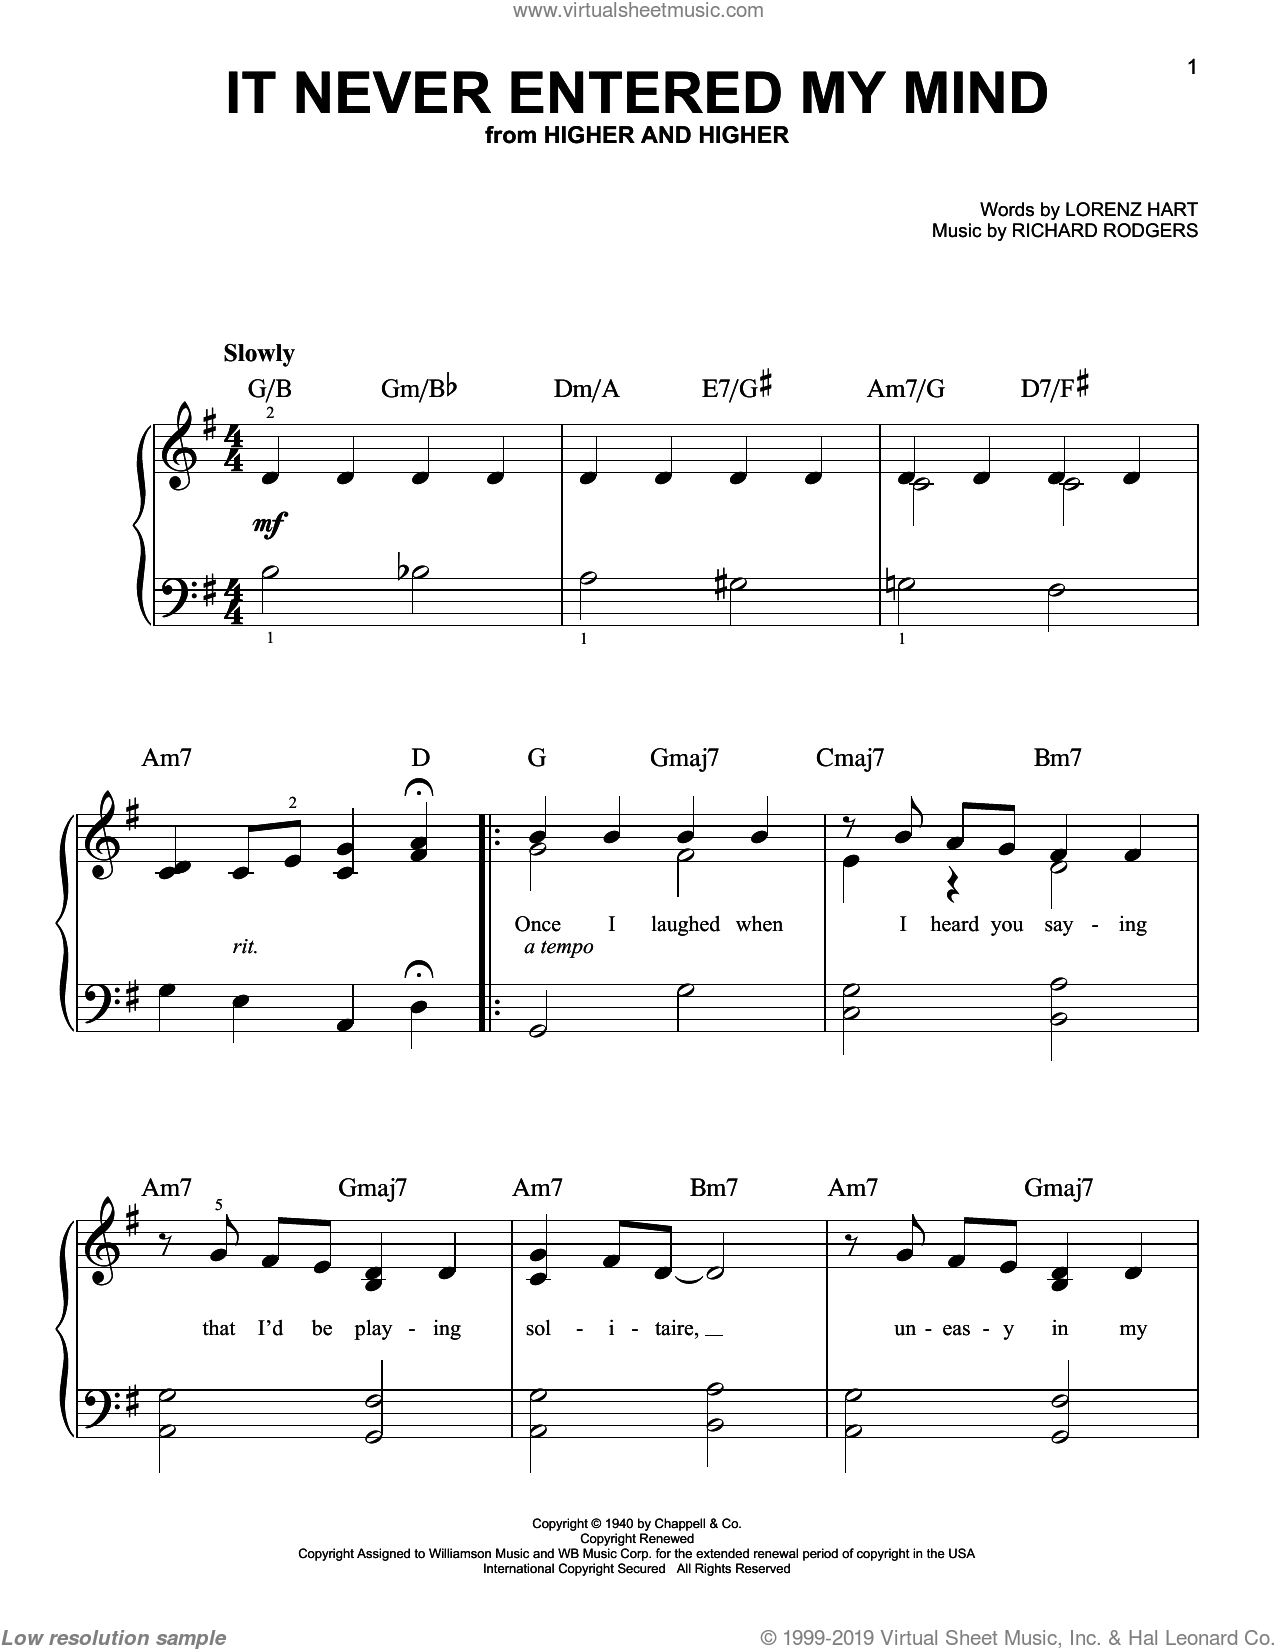 It Never Entered My Mind sheet music for piano solo by Rodgers & Hart, Lorenz Hart and Richard Rodgers, easy skill level